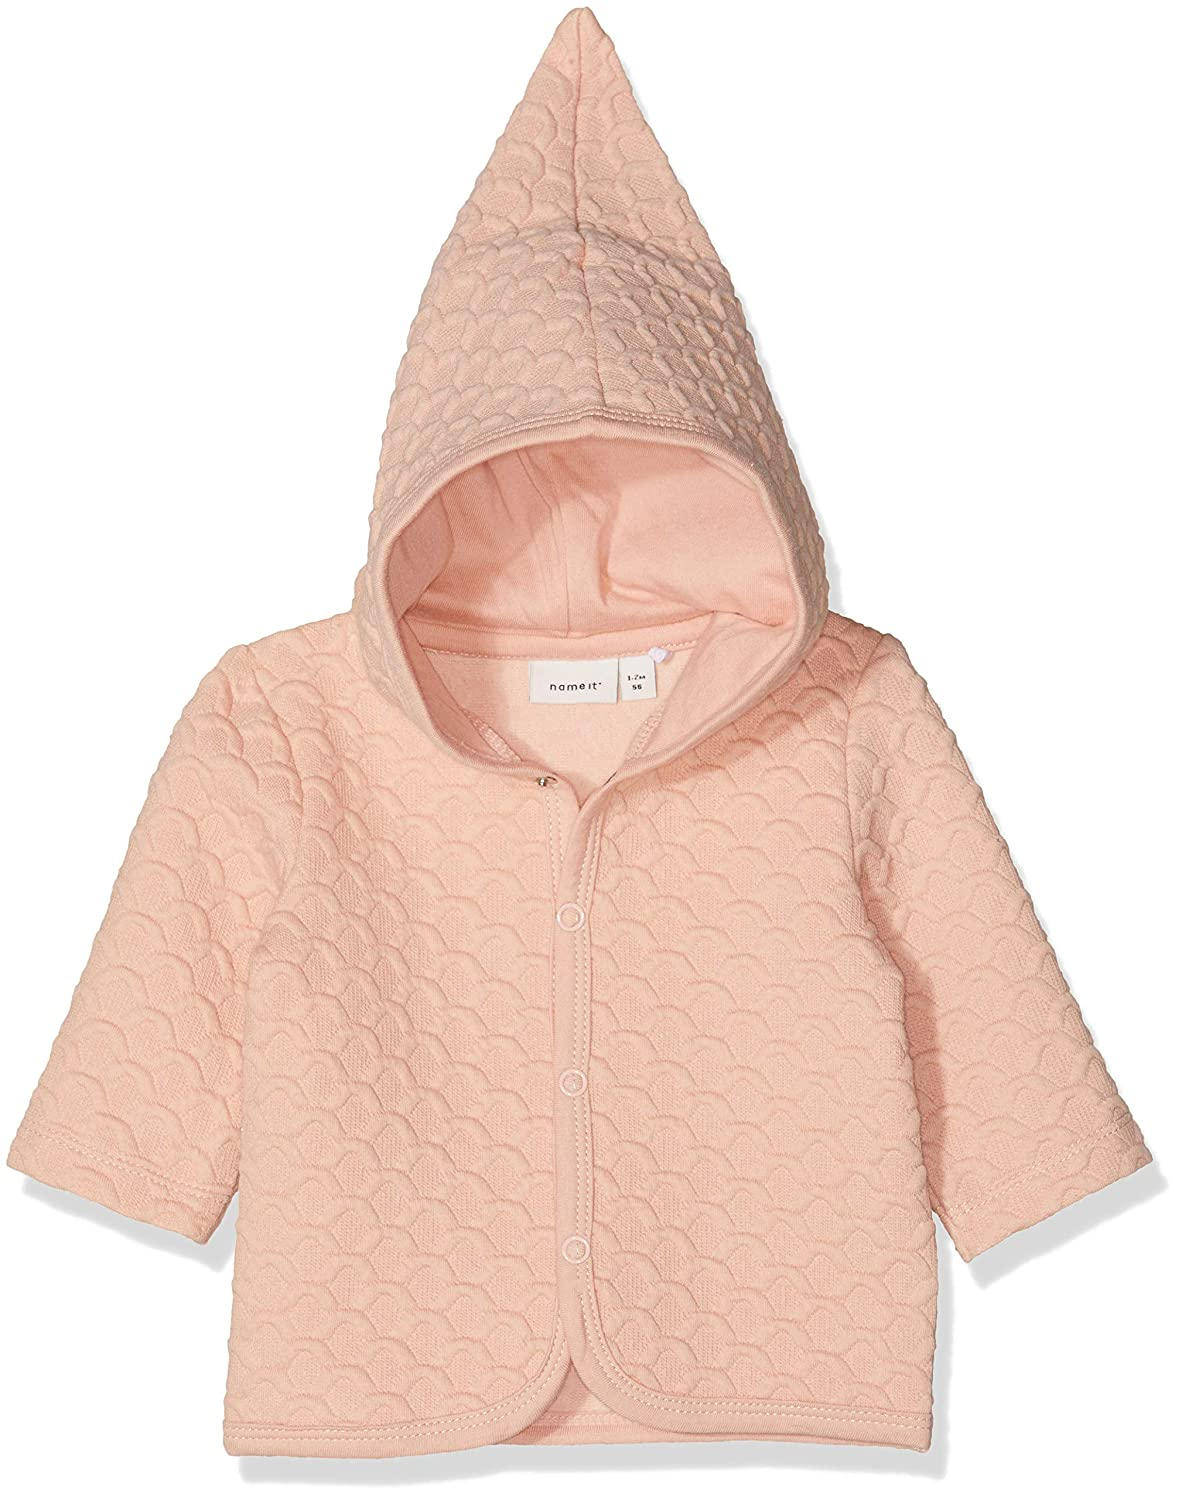 NAME IT Baby-M/ädchen Nitwind Jacket Mz G Fo Jacke